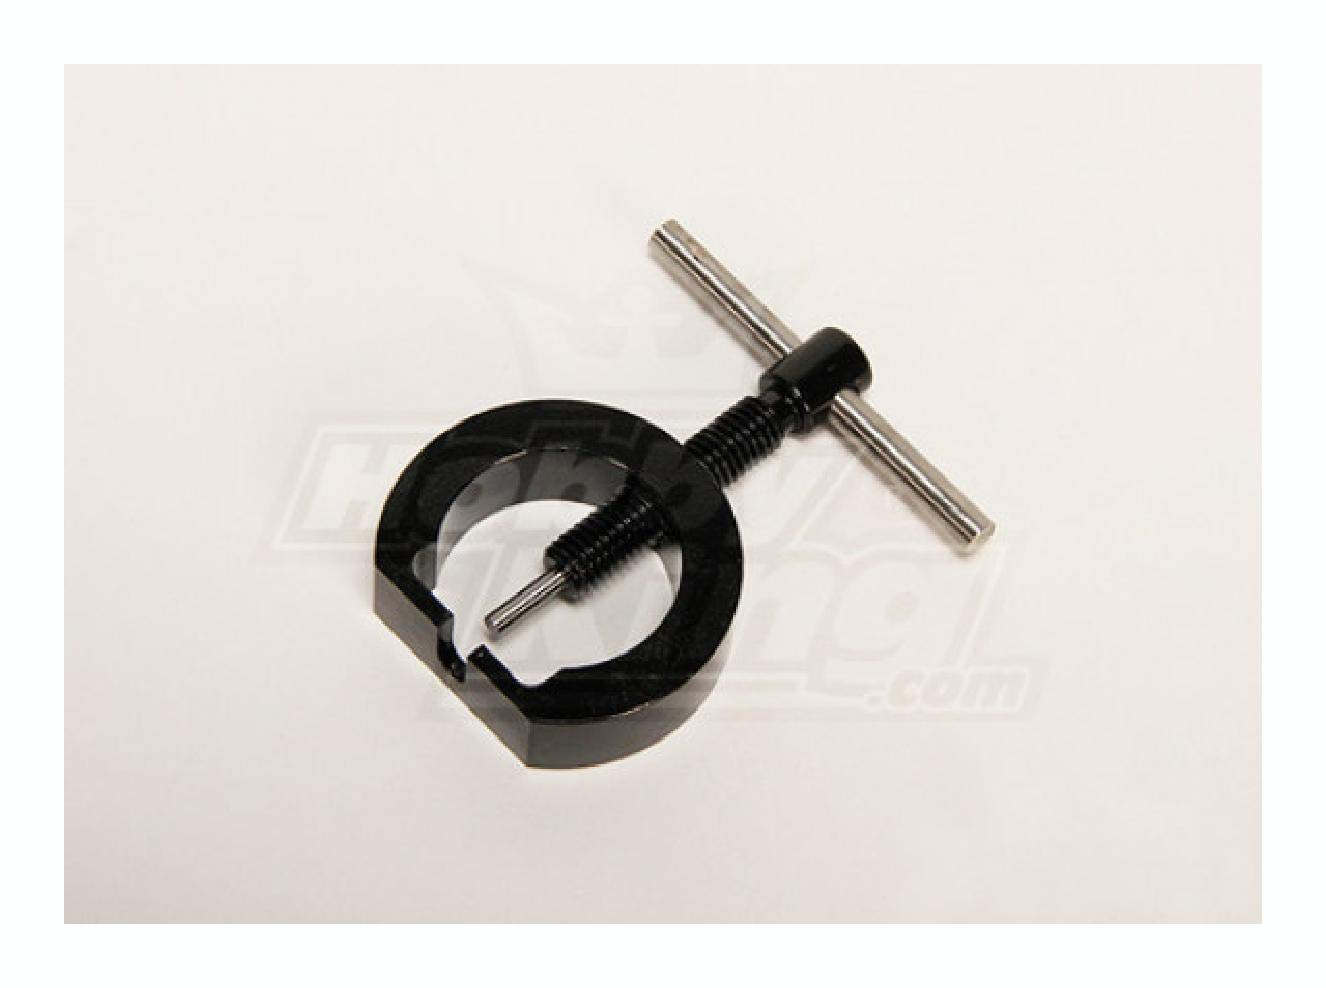 Tools & Accessories, Turnigy Pinion Removal Tool